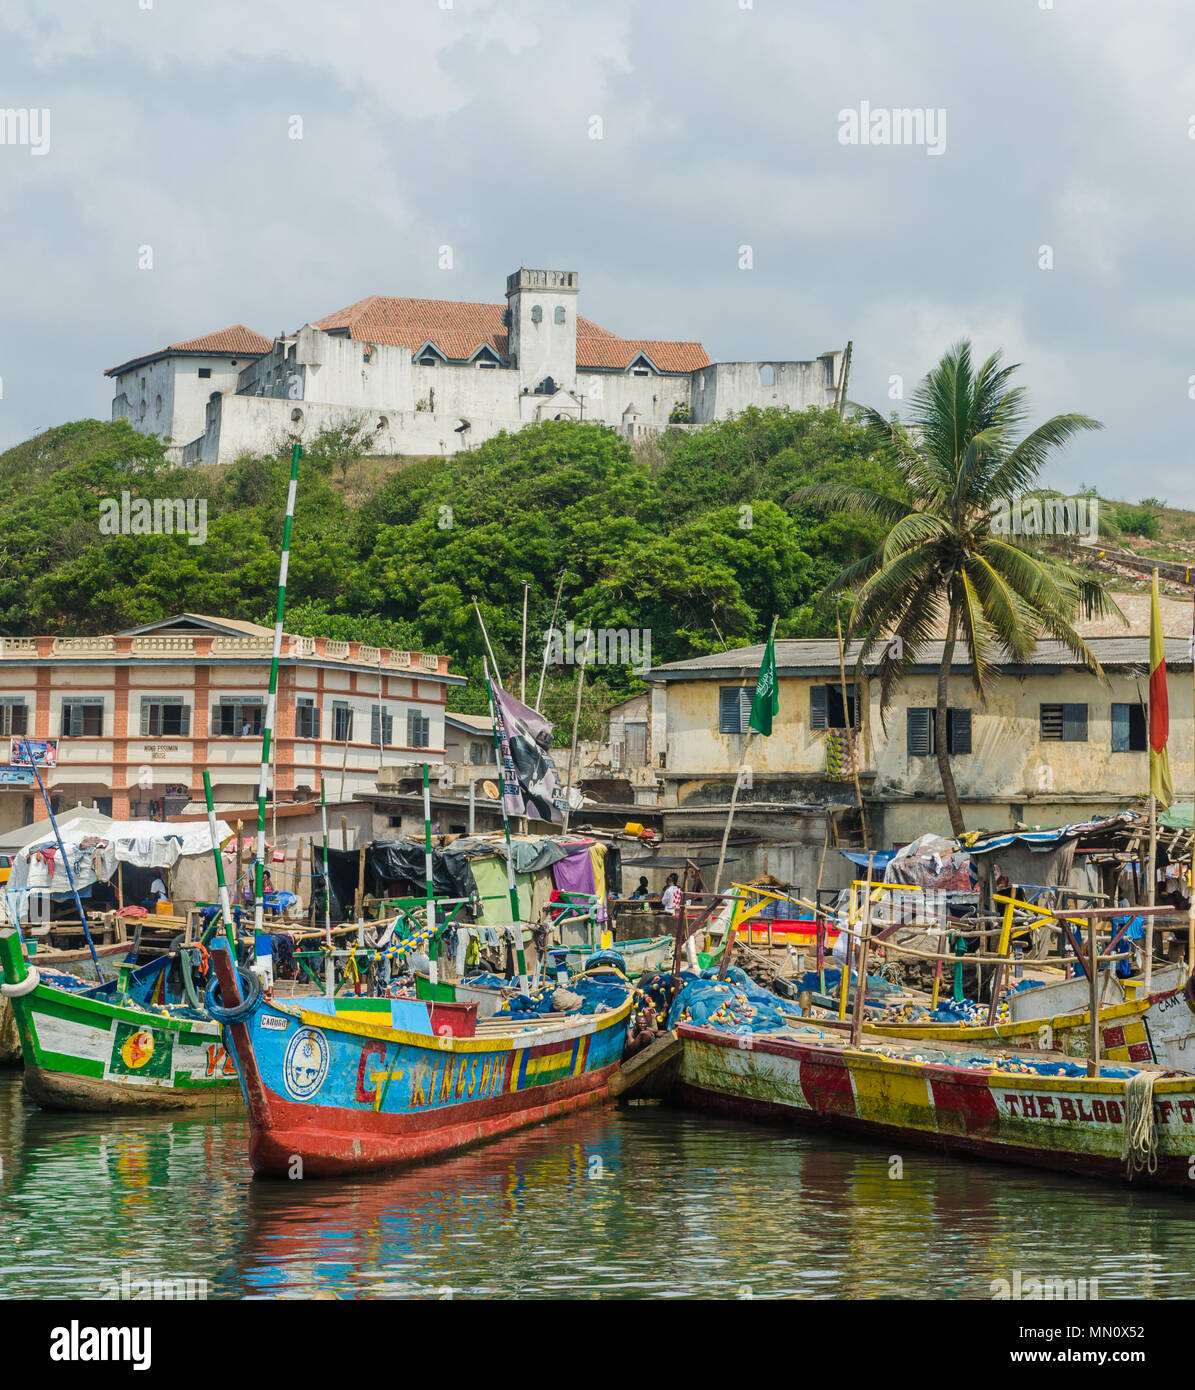 Elmina, Ghana - February 13, 2014: Colorful moored wooden fishing boats in African harbor town Elmina - Stock Image